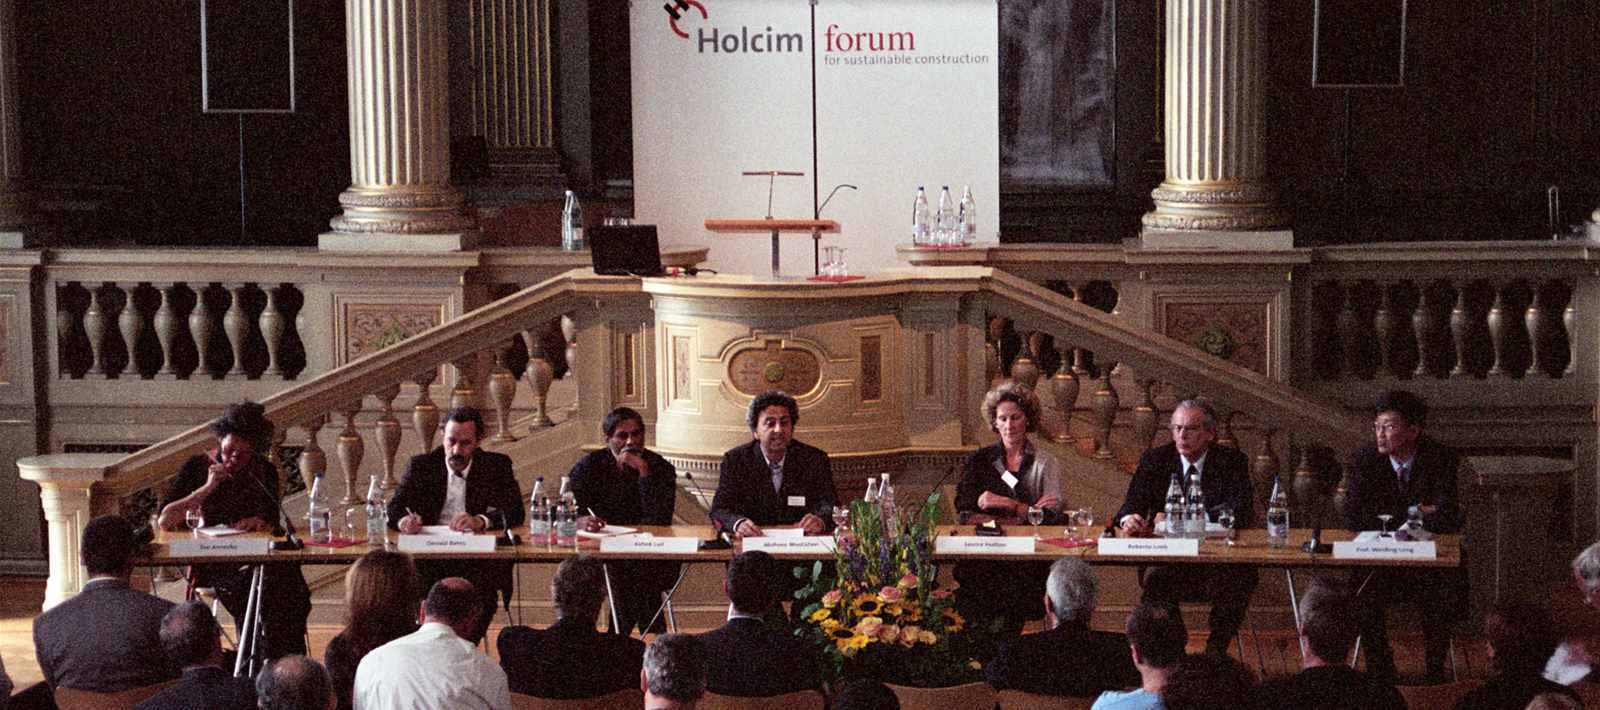 1st Forum 2004 - Workshop overview